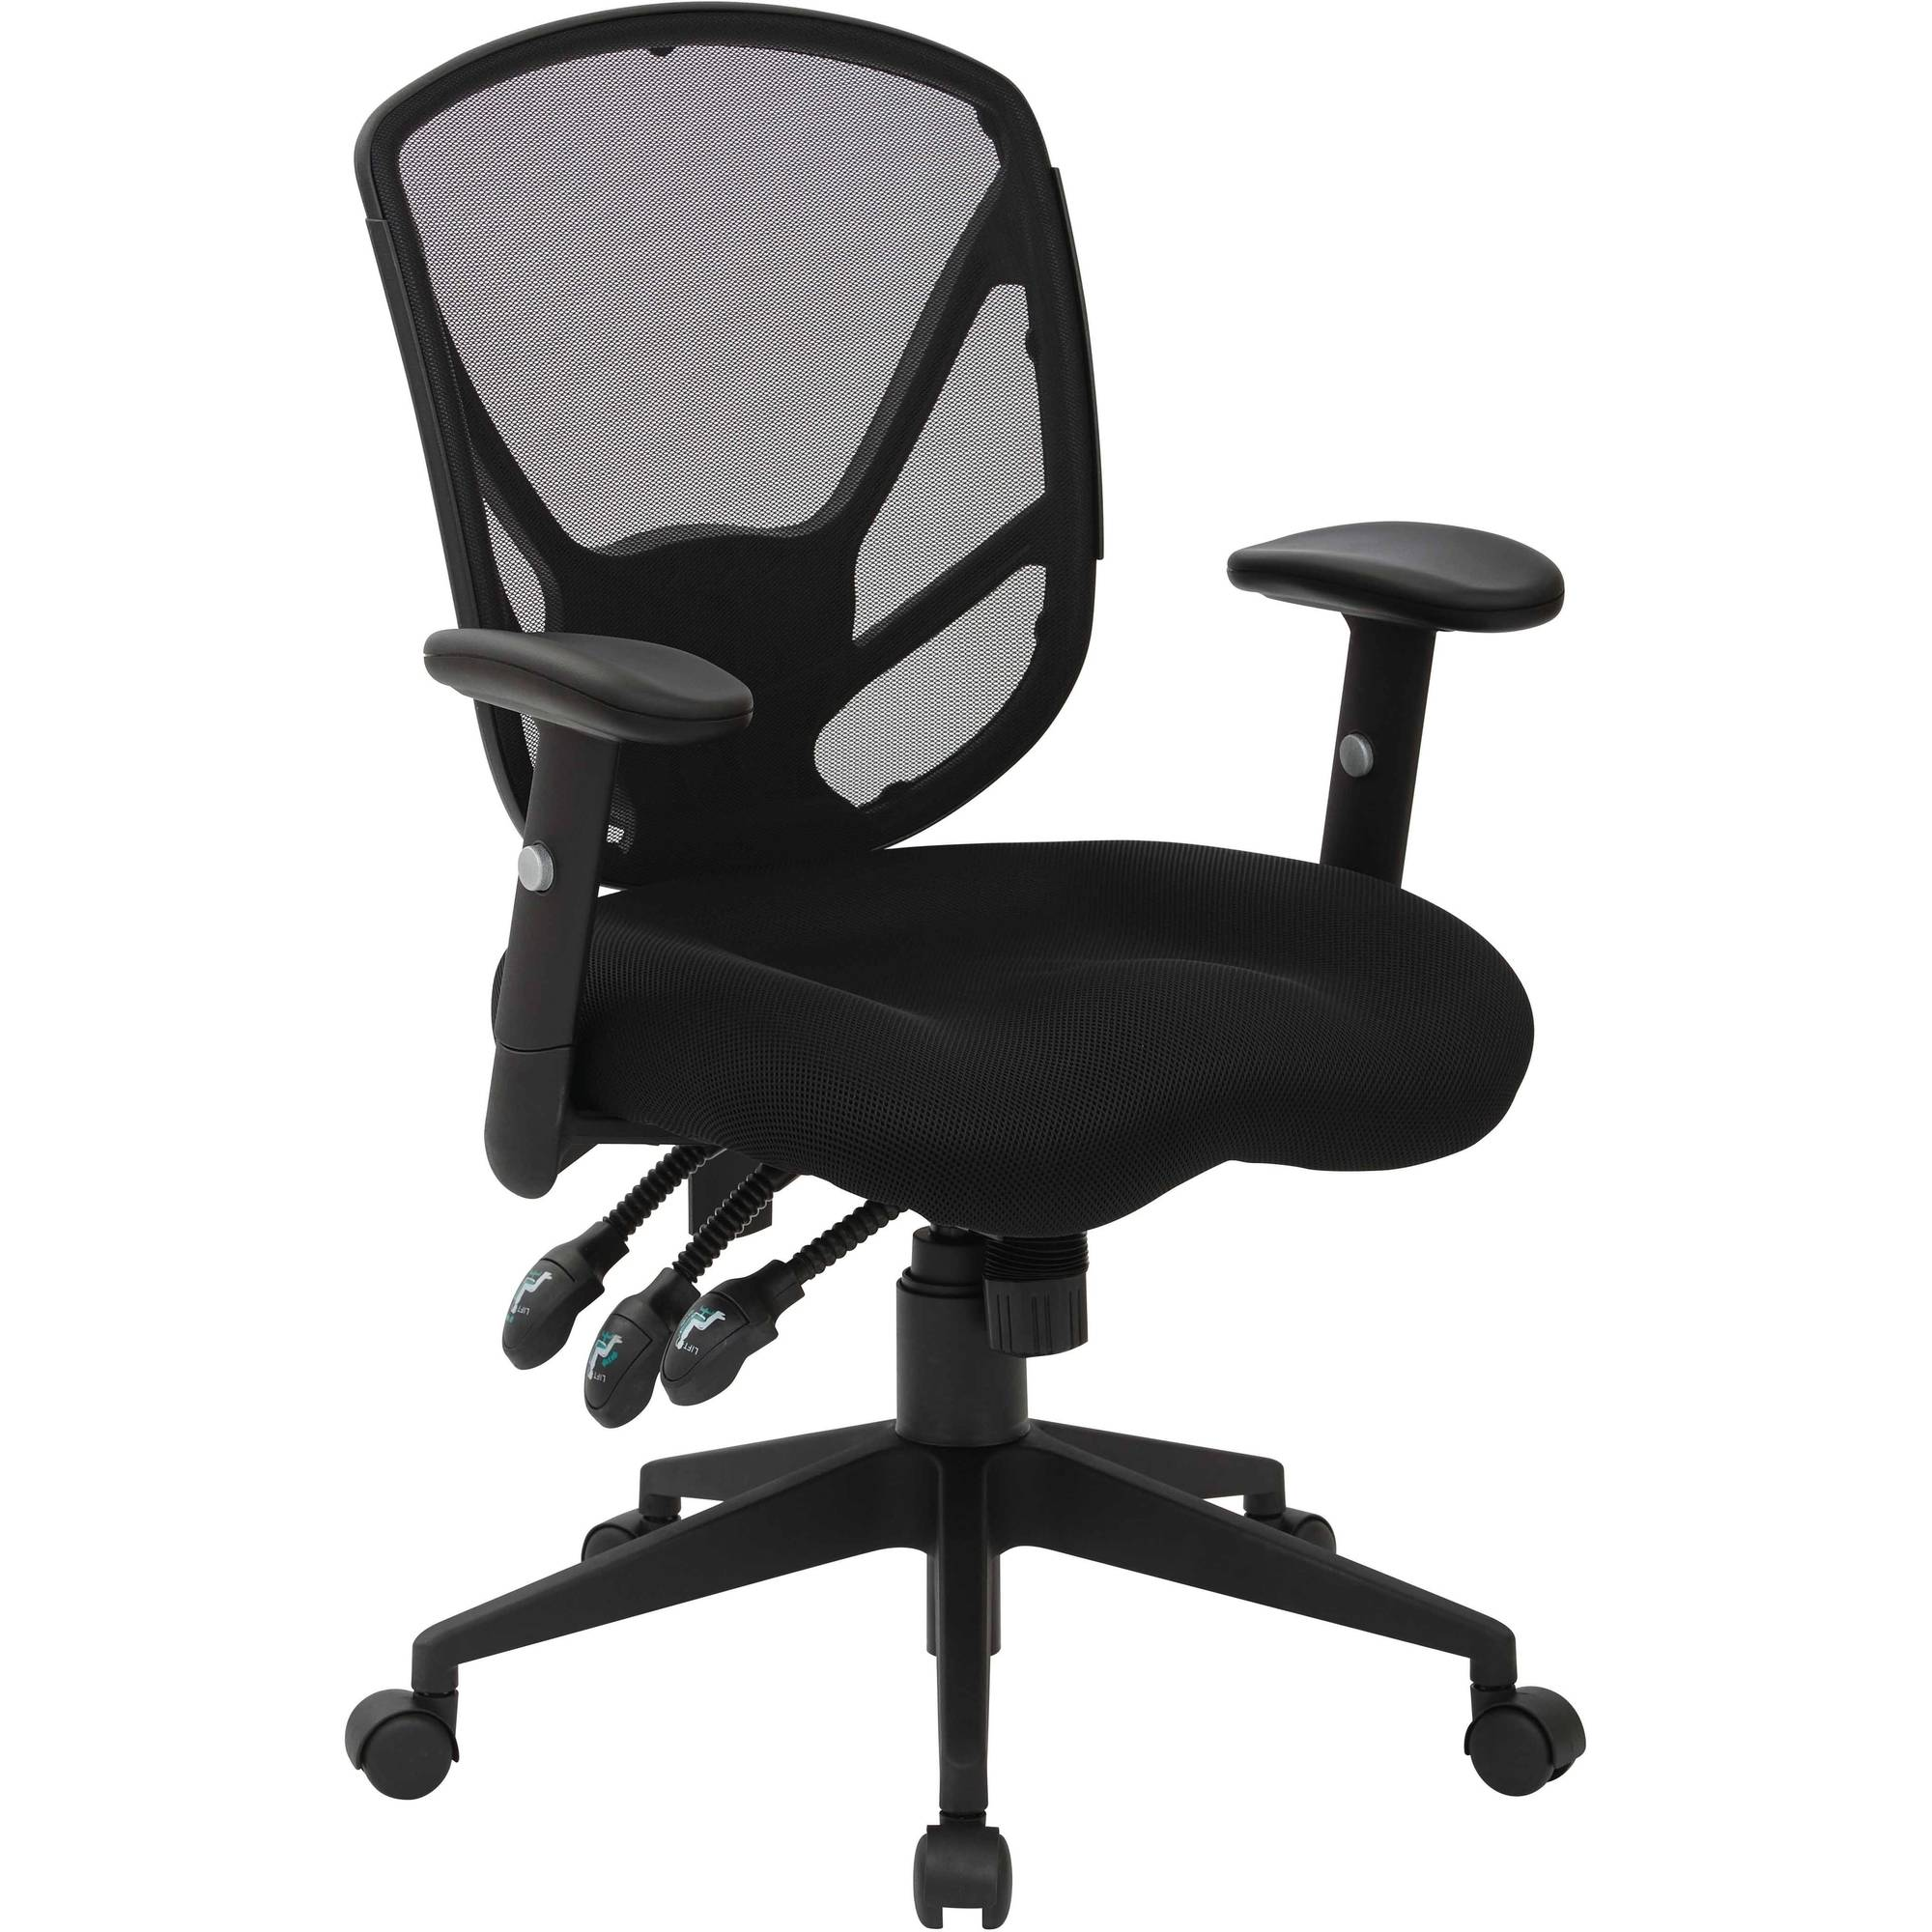 Office Star Black Office Chair with Saddle Seat Design